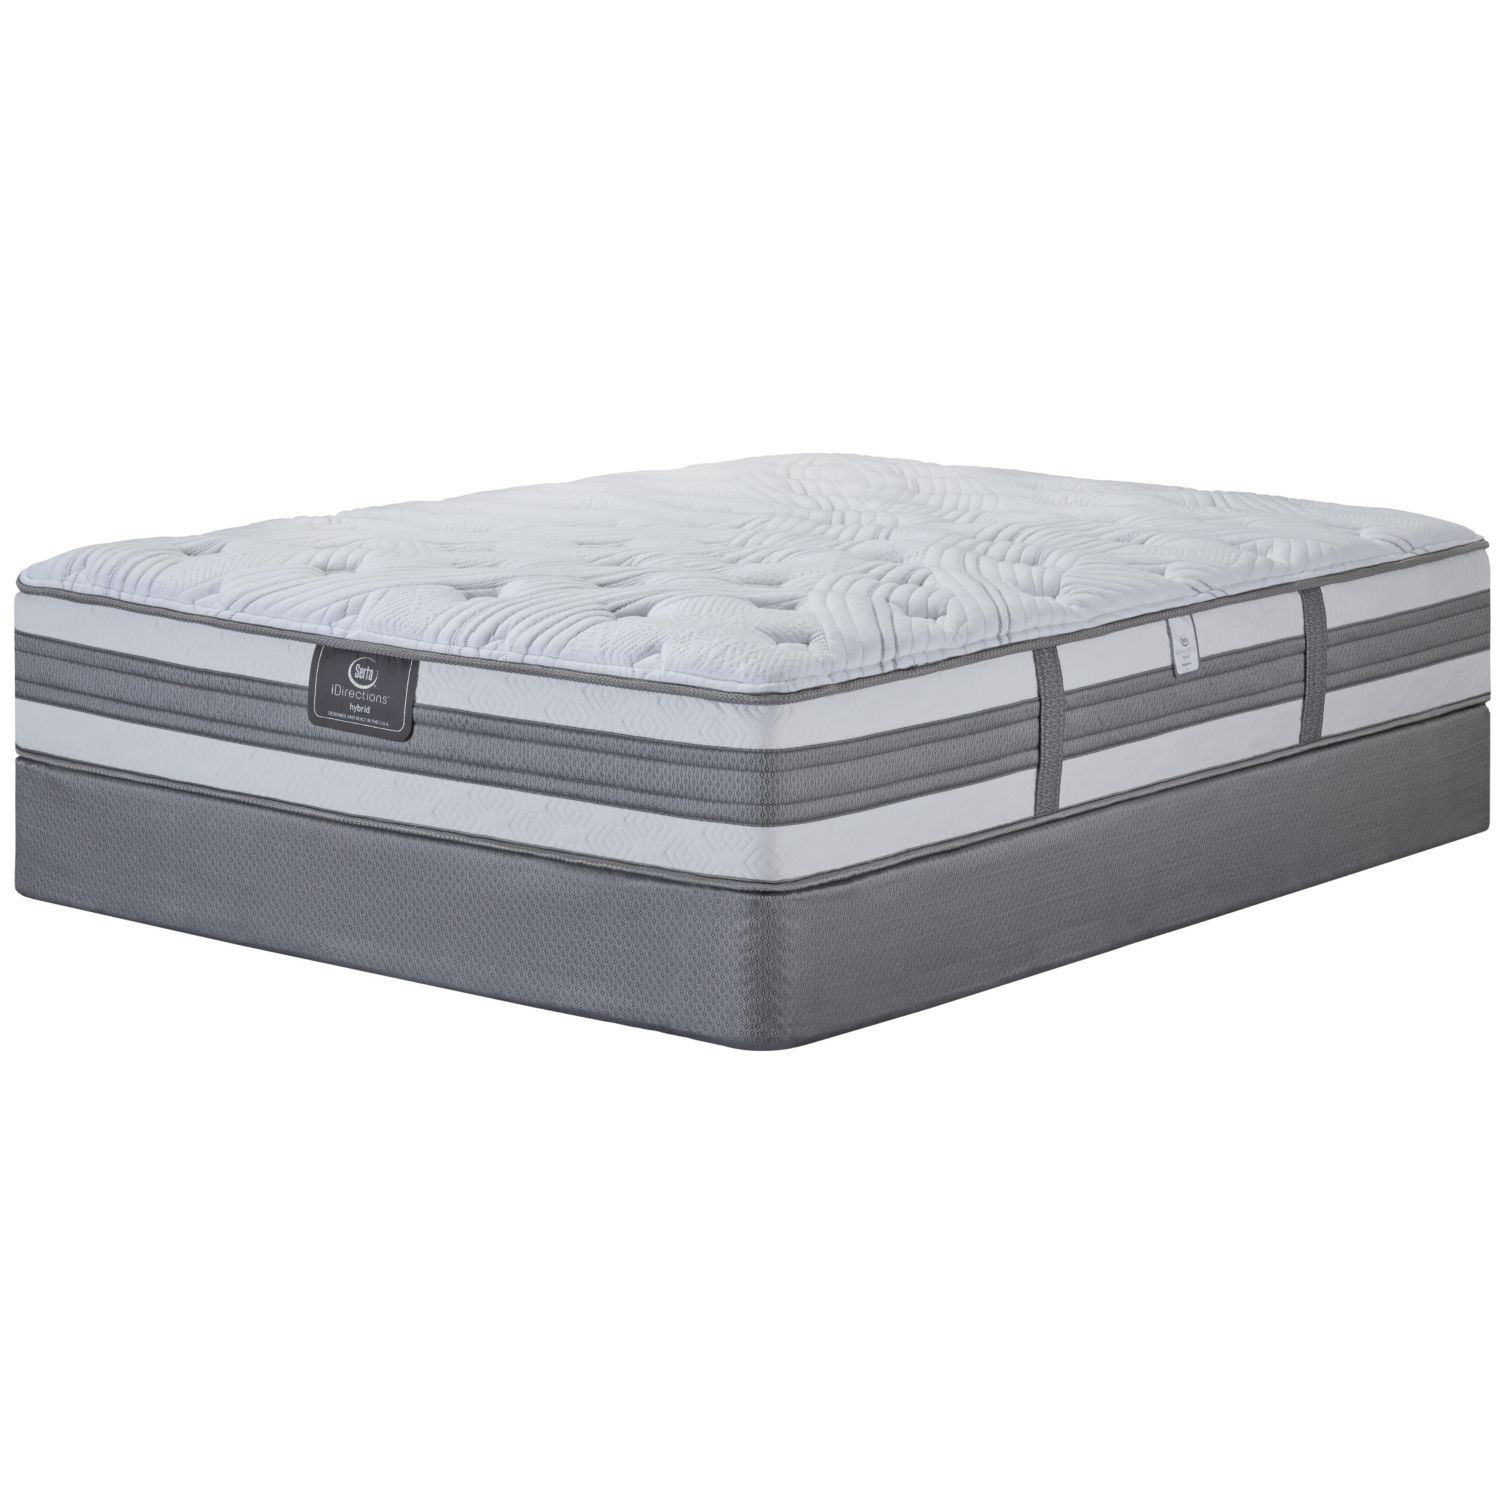 Serta iDirections Bridgemoor Plush Mattress Reviews